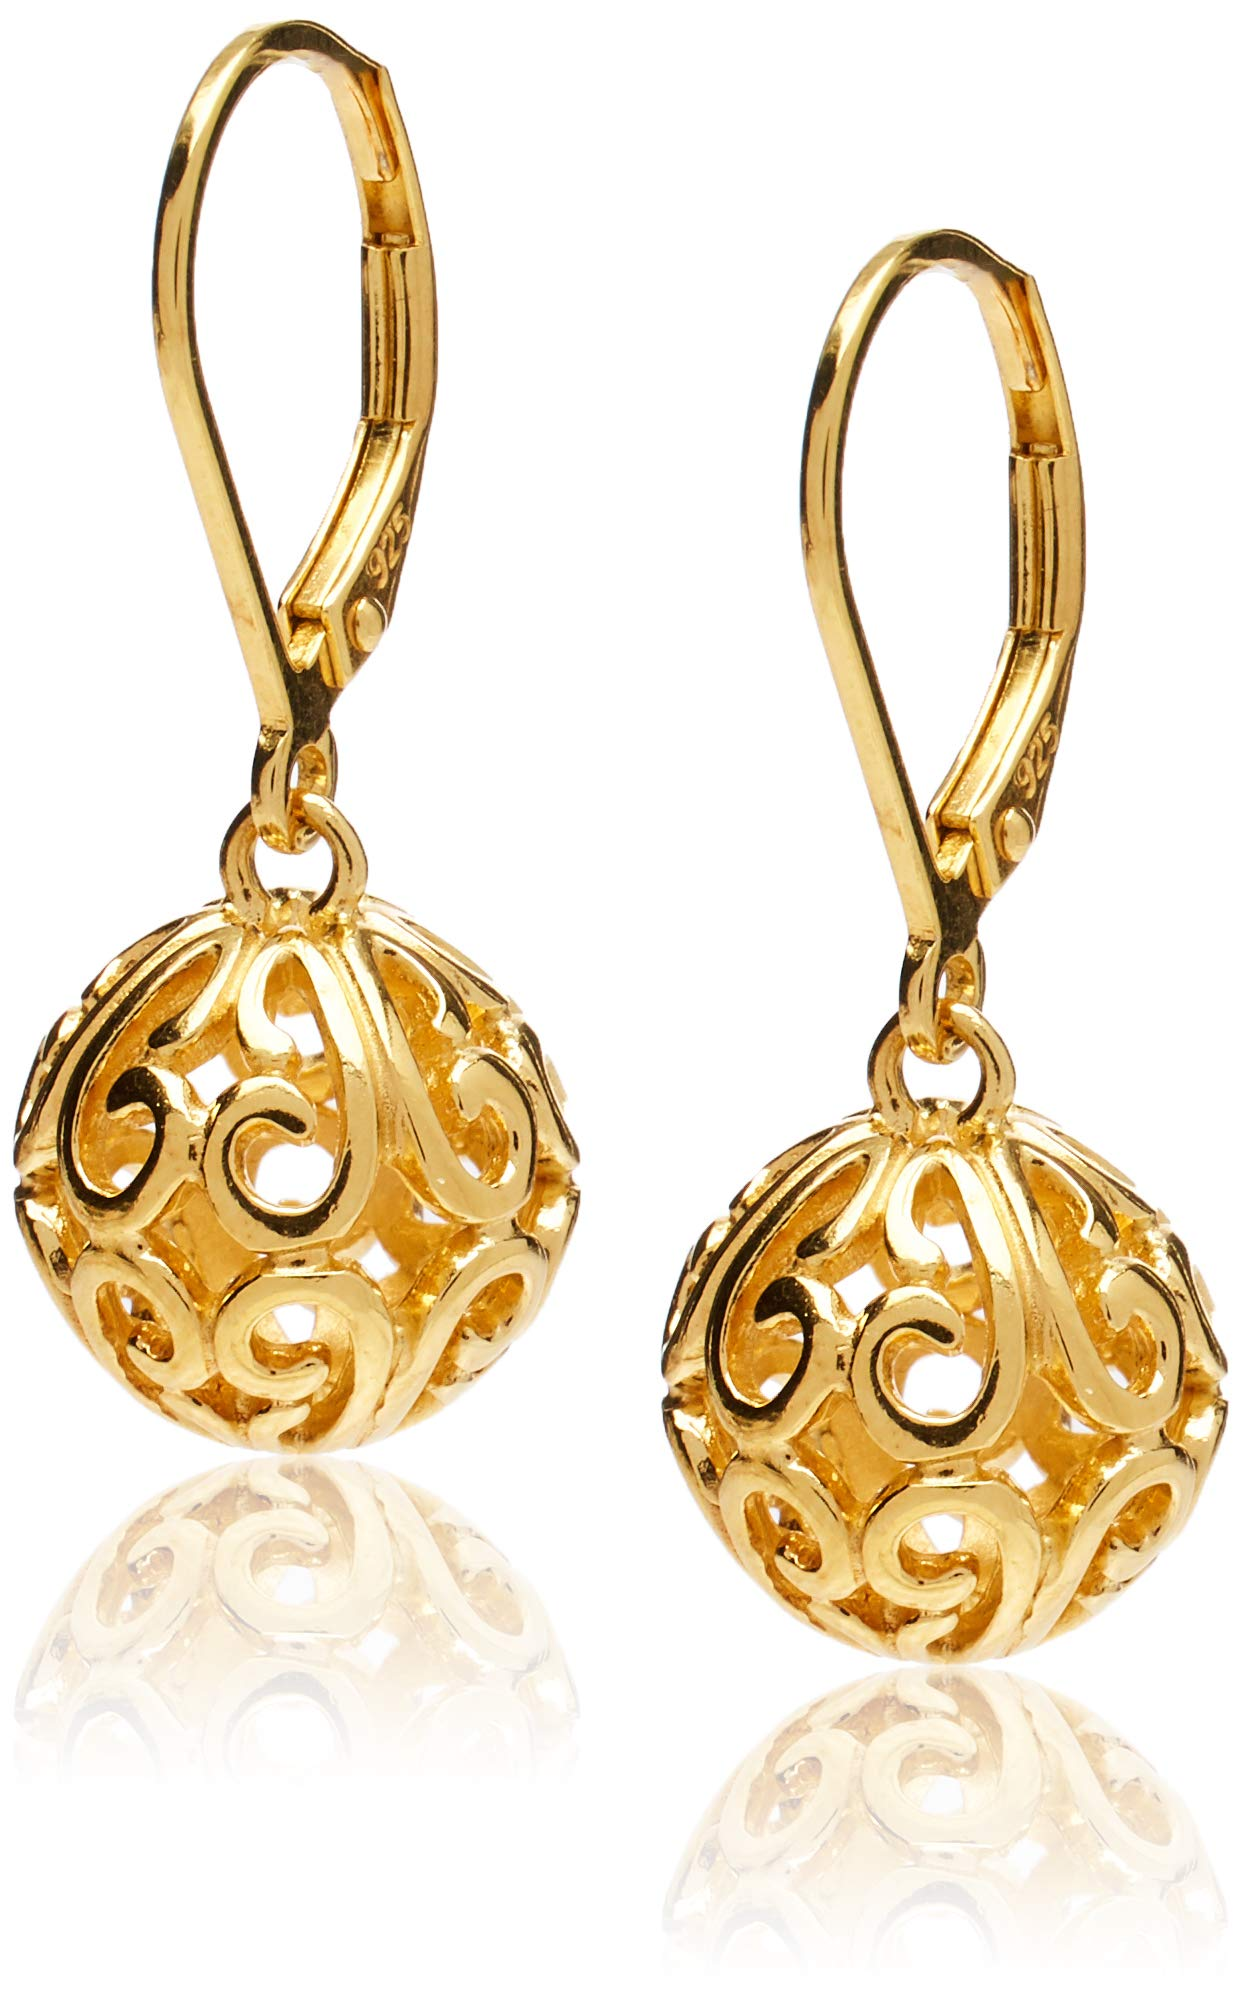 18k Yellow Gold Plated Sterling Silver Filigree Ball Leverback Dangle Earrings by Amazon Collection